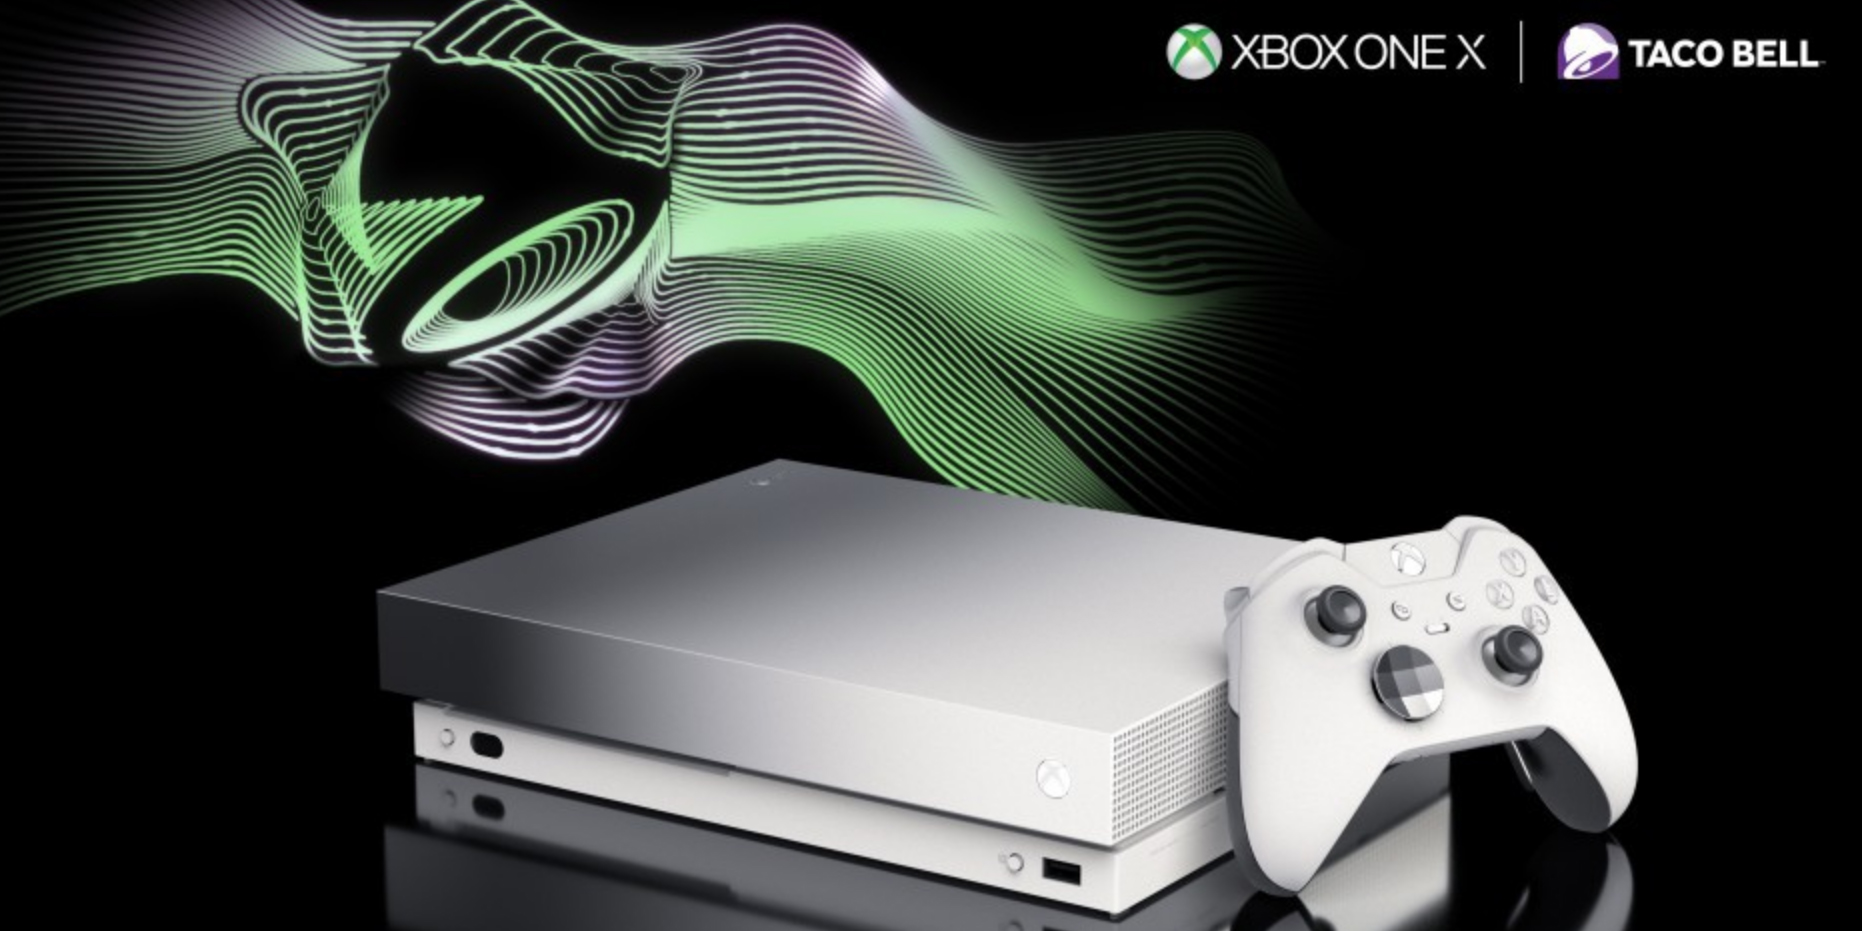 Taco Bell Is Giving Away Limited Edition Xbox One X